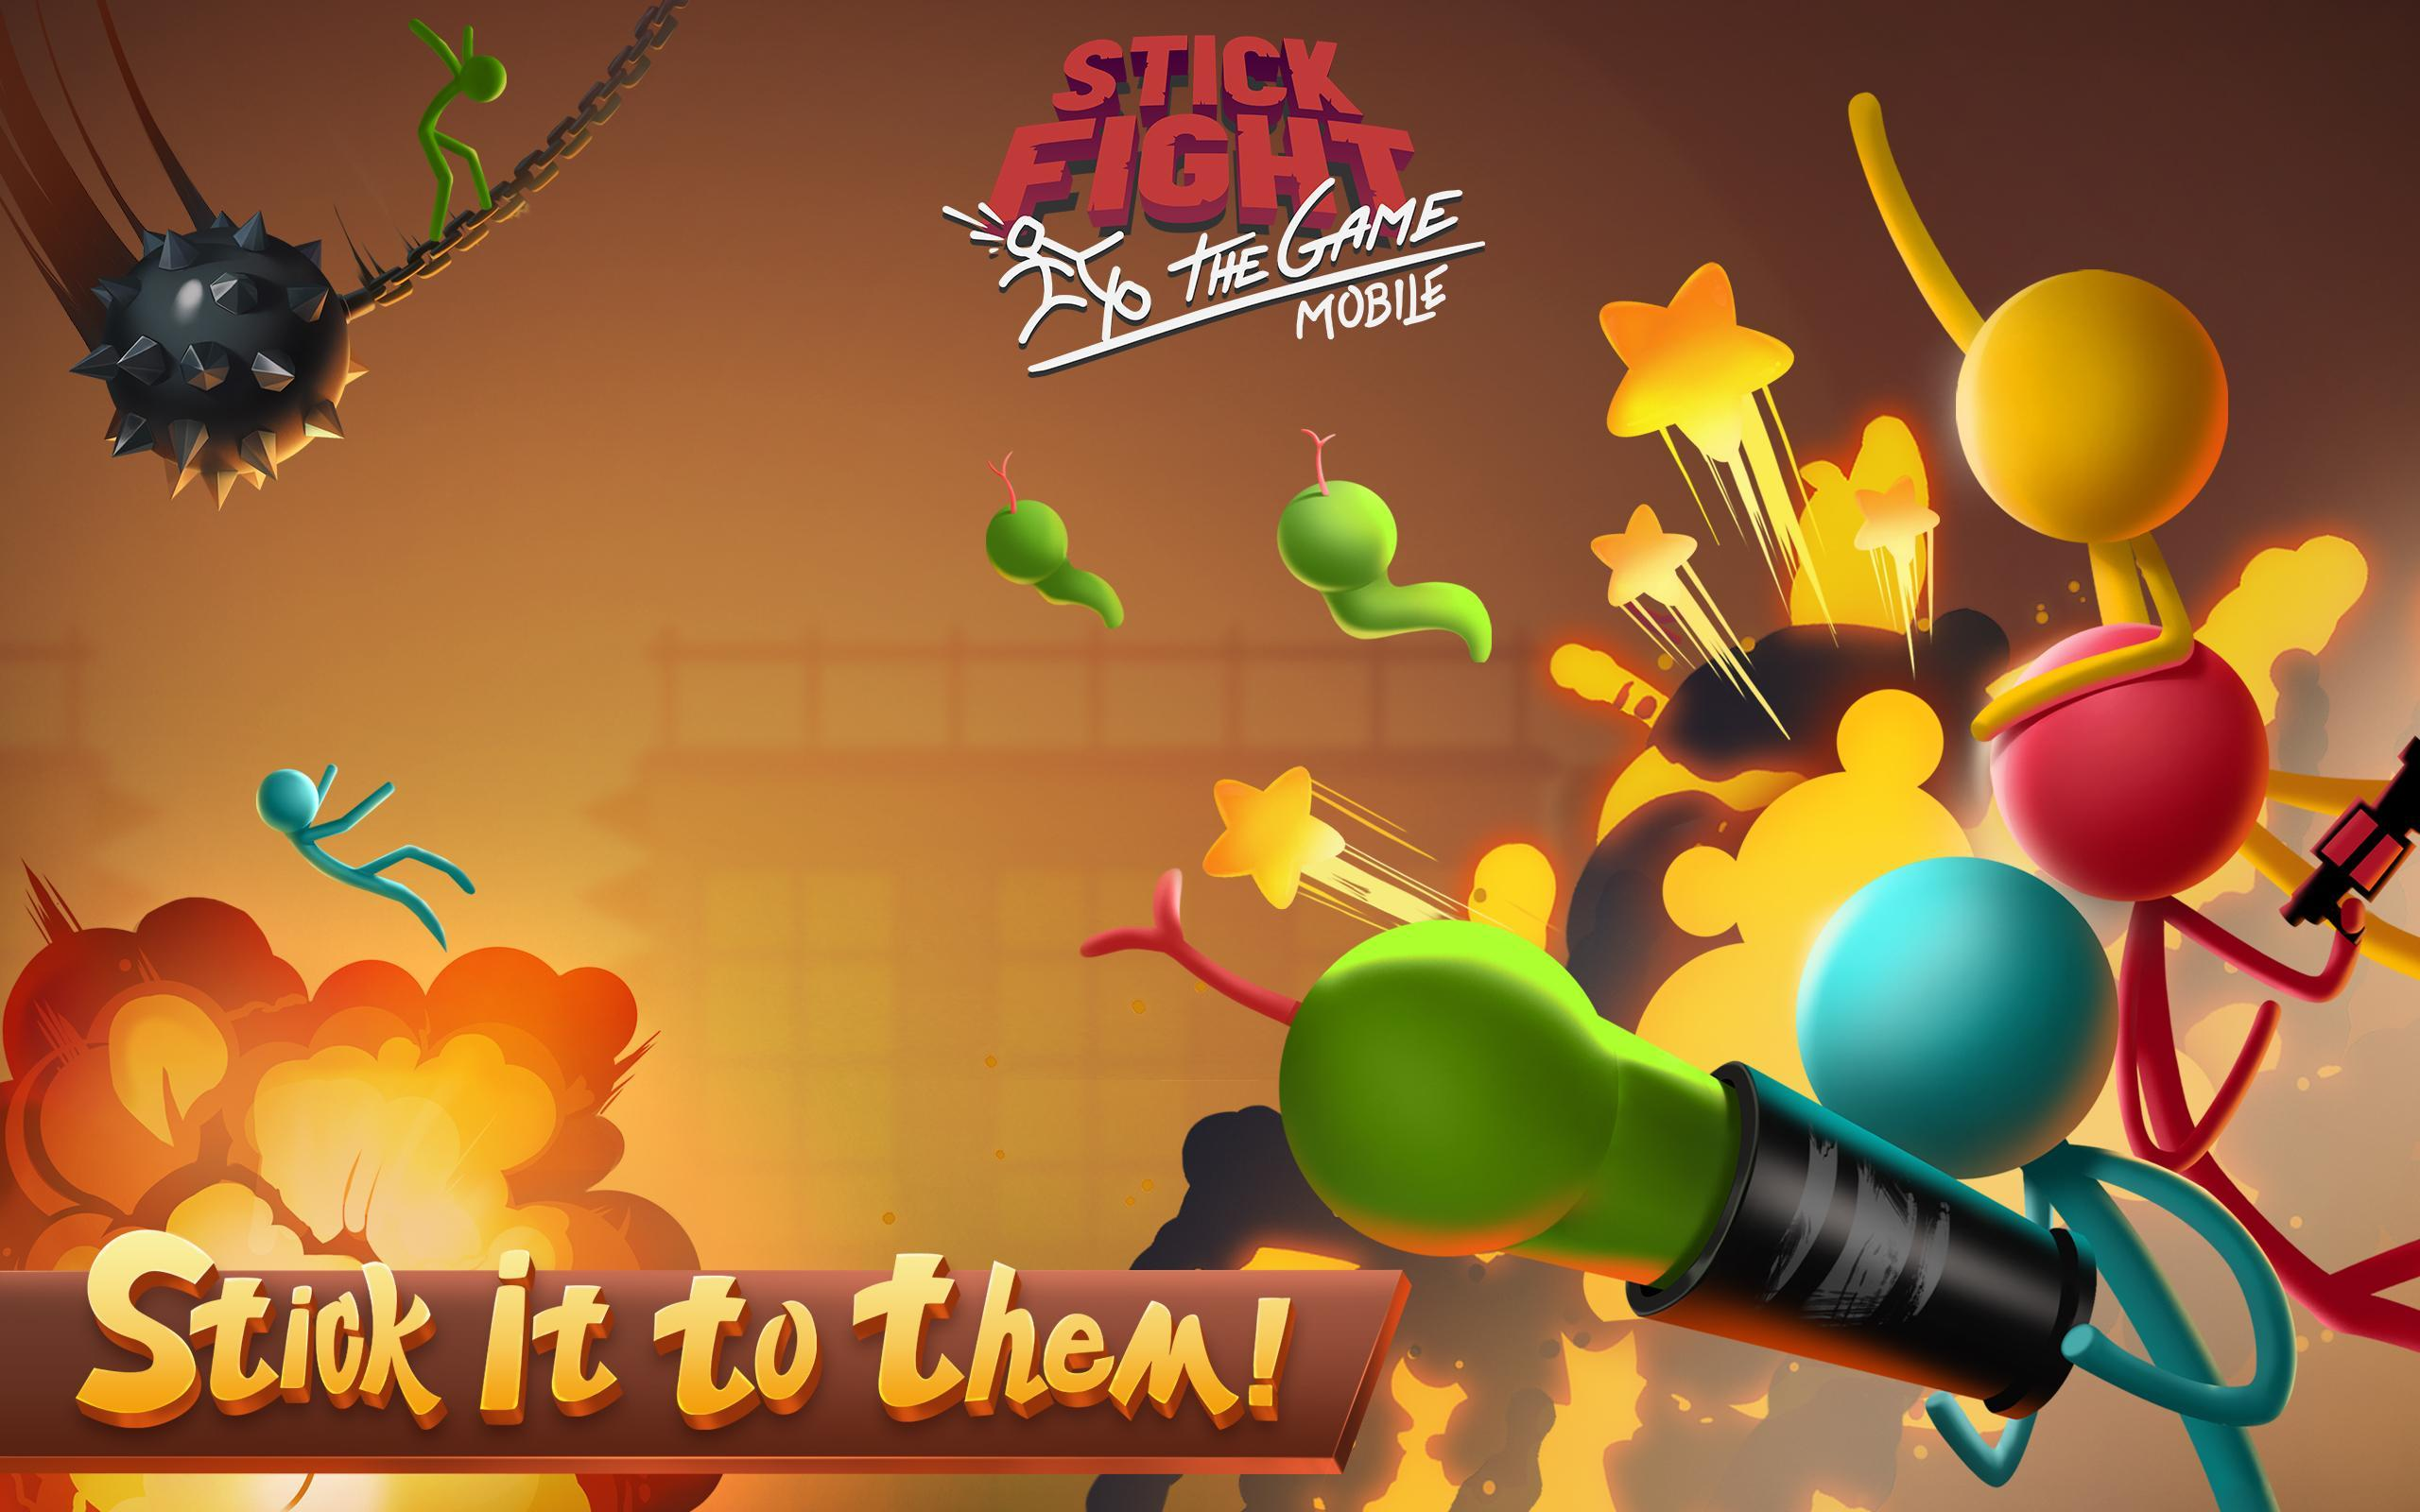 Stick Fight: The Game for Android - APK Download